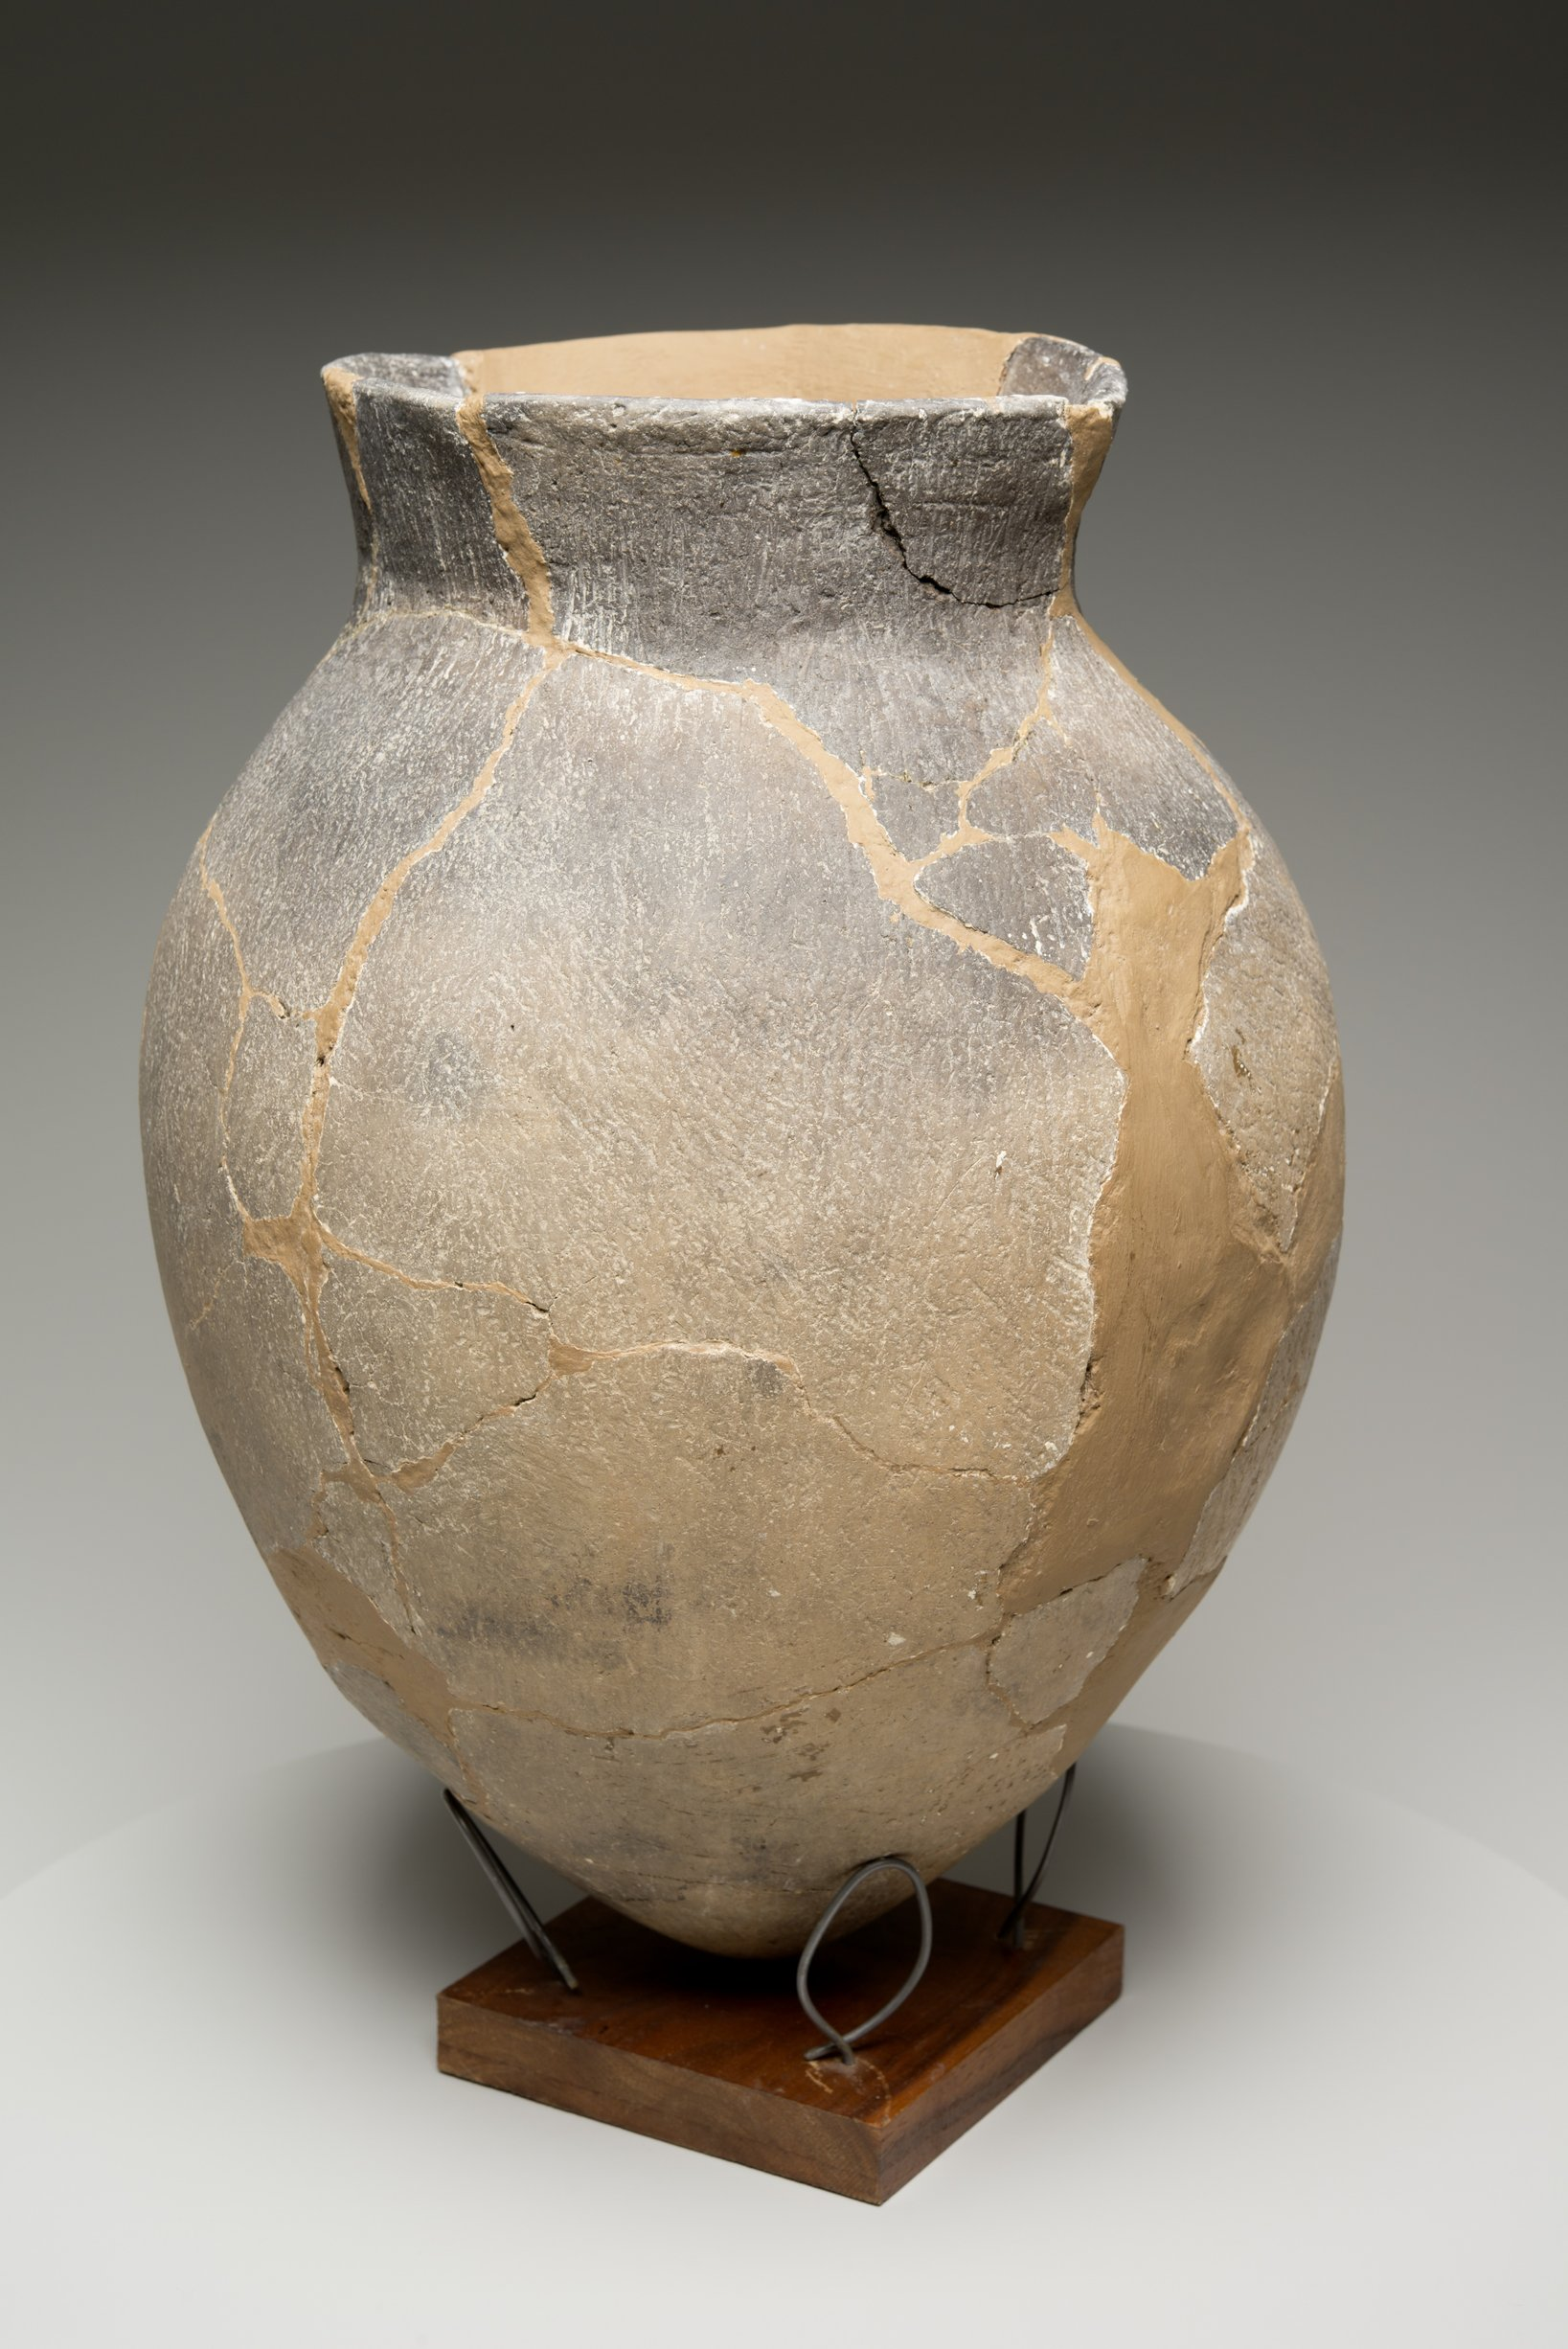 Grasshopper Falls phase Early Ceramic Vessel From the Booth Site, 14JN349 - 4